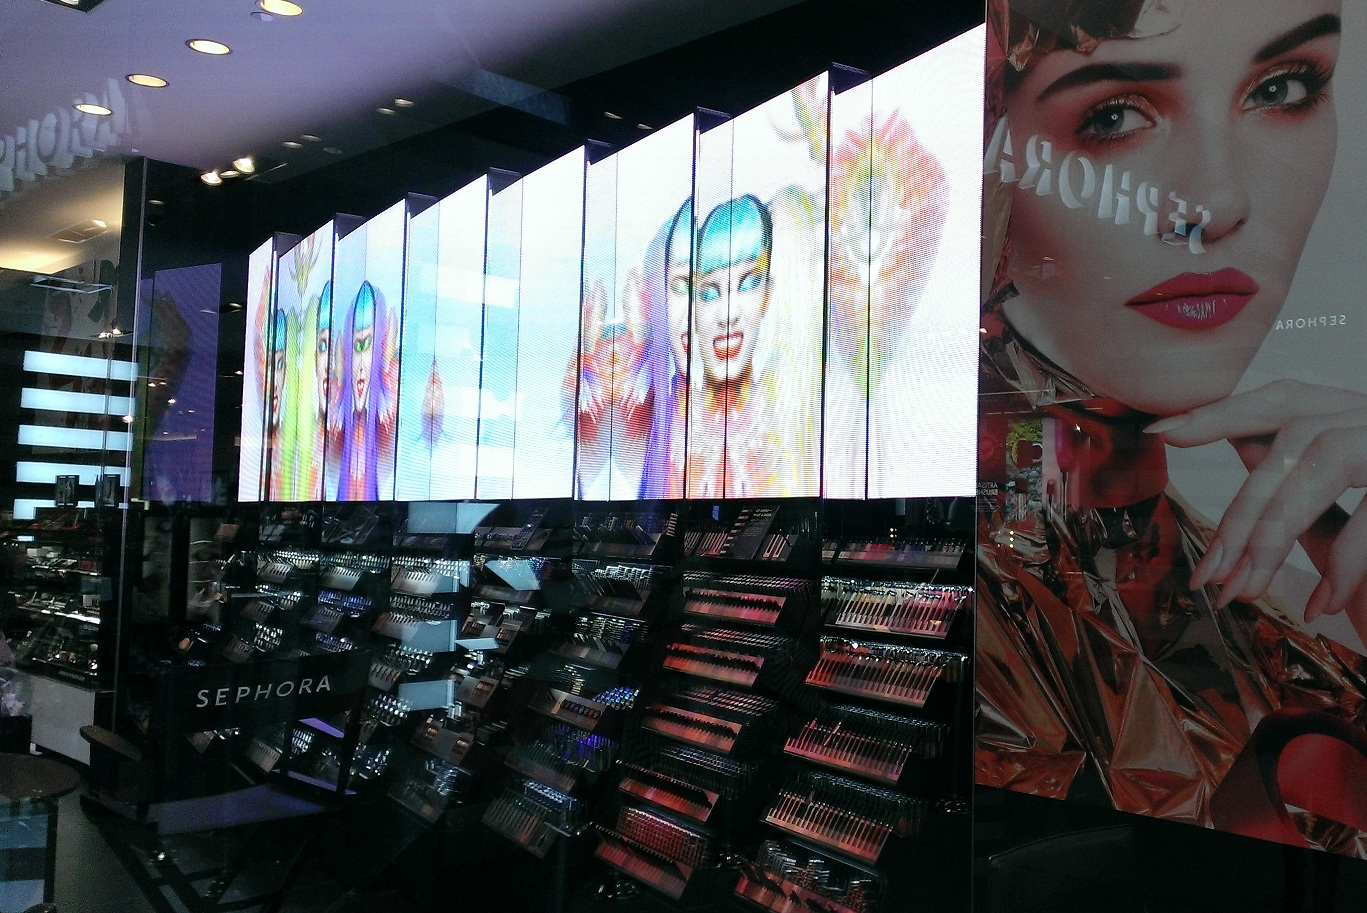 DailyDOOH » Blog Archive » Sephora Wows Shoppers With 'Lights And ...